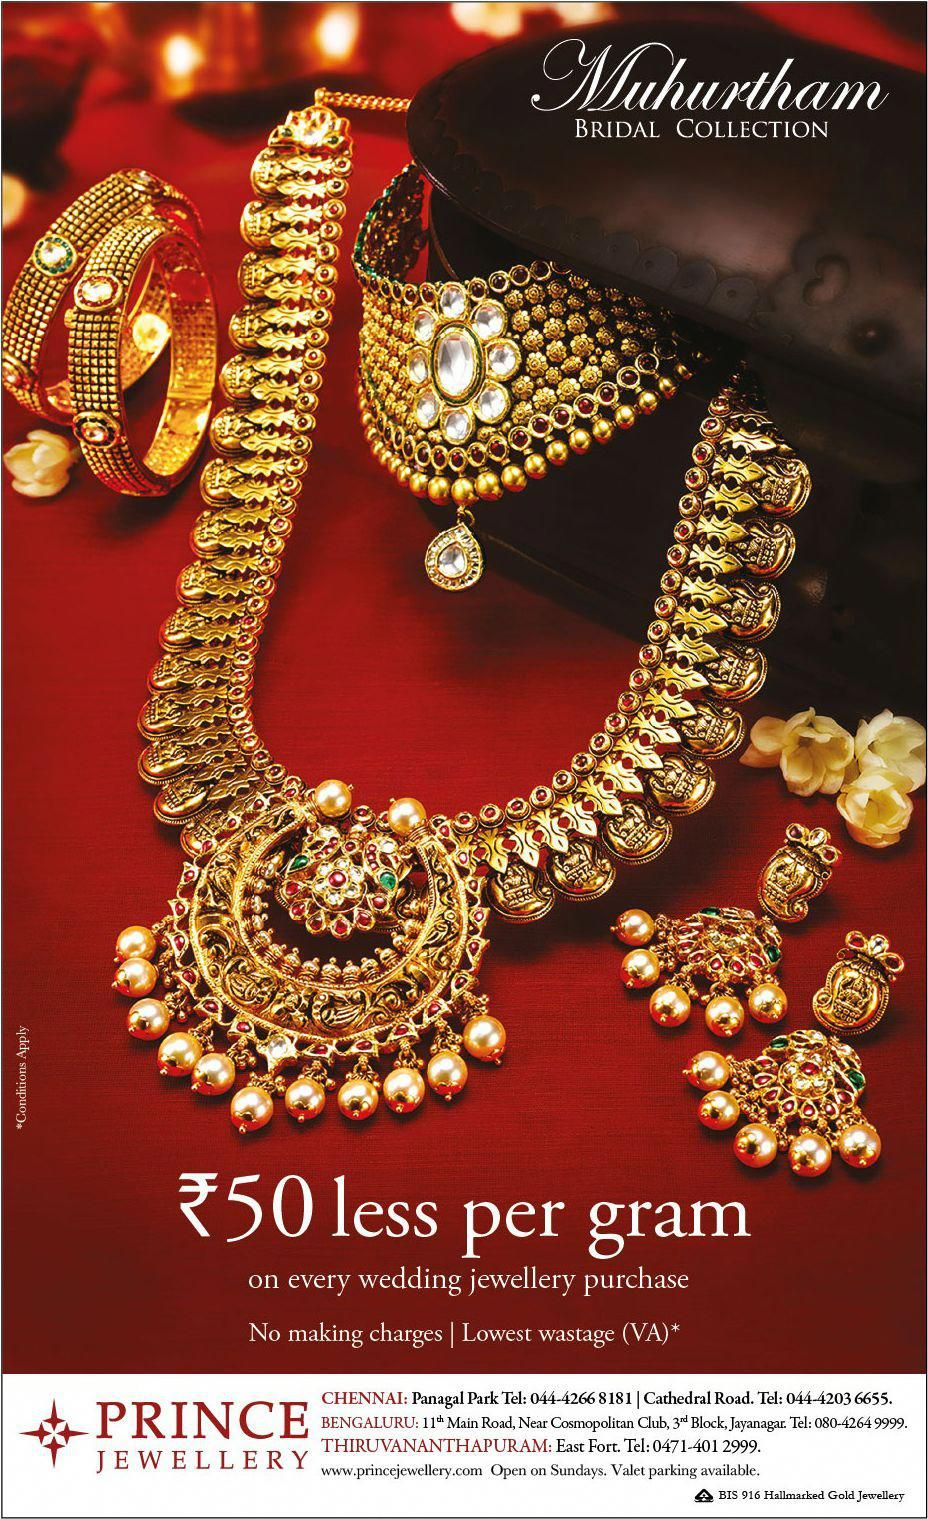 Prince Jewellery Muhurtham Bridal Collection Rs 50 Less Per Gram On Every Wedding Je Bridal Necklace Designs Beautiful Gold Necklaces Gold Jewelry Fashion